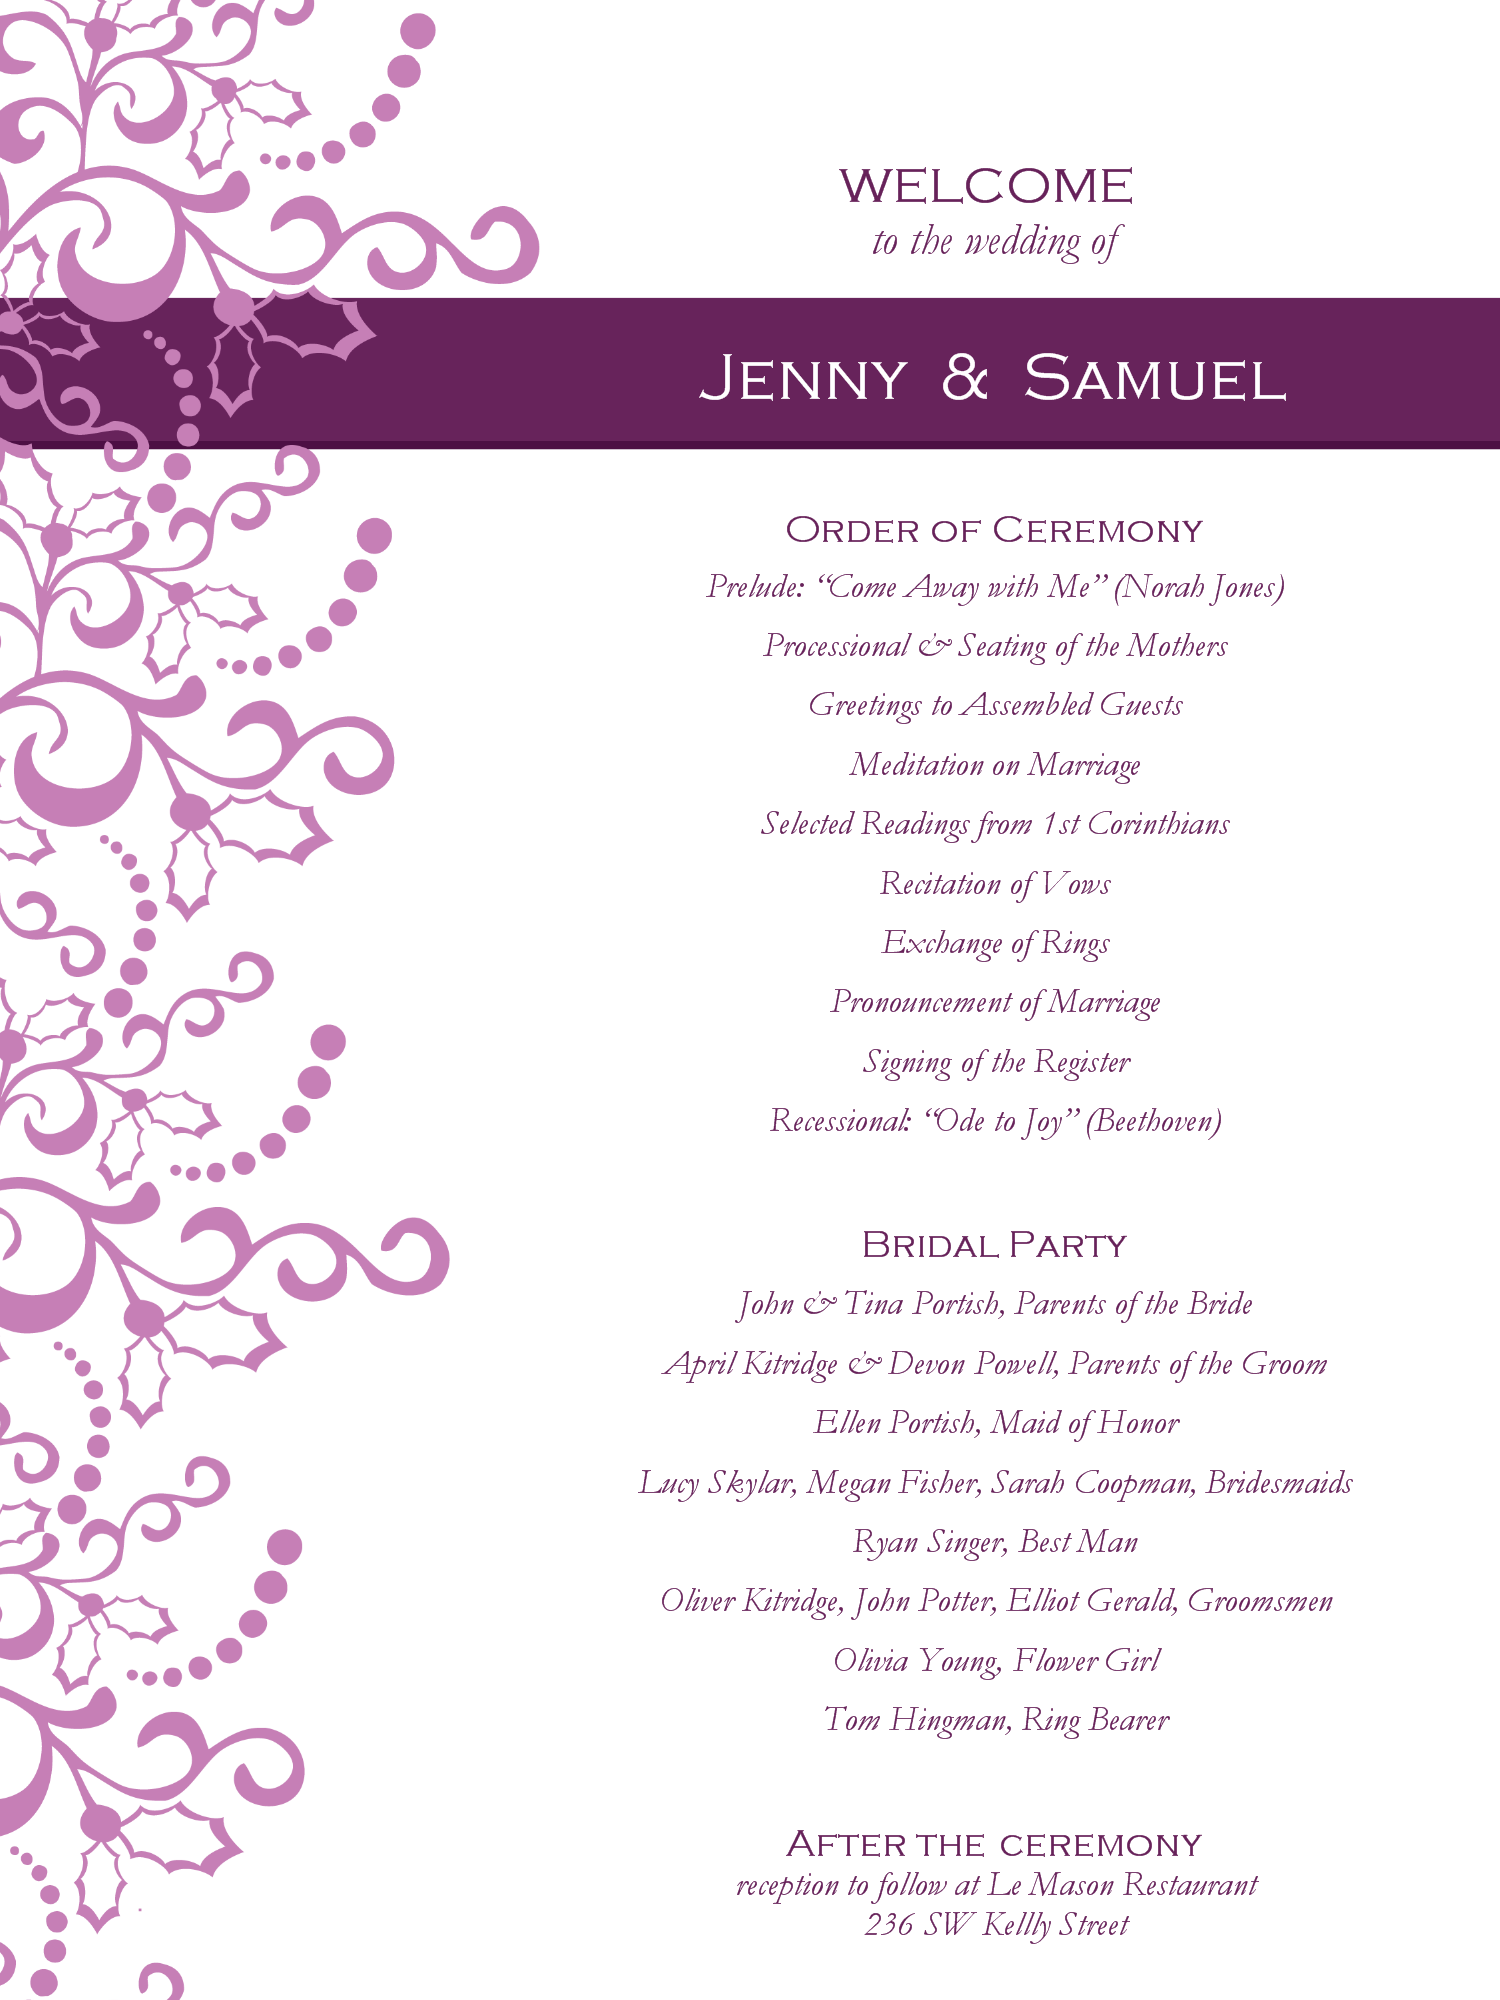 Romance clipart wedding program #4